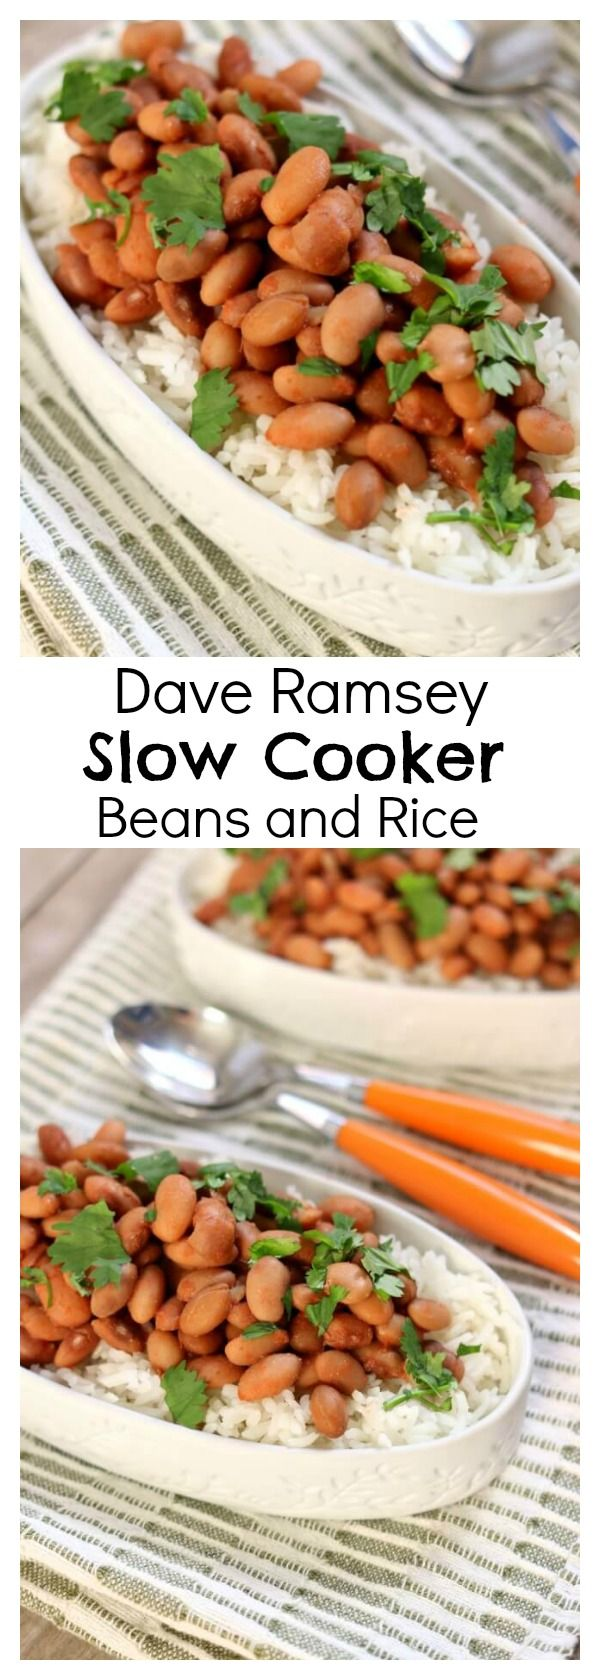 Dave Ramsey Slow Cooker Beans and Rice Recipe–if you're trying to cut down on your grocery bill I have a nourishing and inexpensive slow cooker beans recipe. We start with dried pinto beans (cheap!) and cook them all day while you're at work (earning money to pay off your debts). Add in some salt, cumin, garlic powder and tomato sauce and you have dinner (or lunch)!